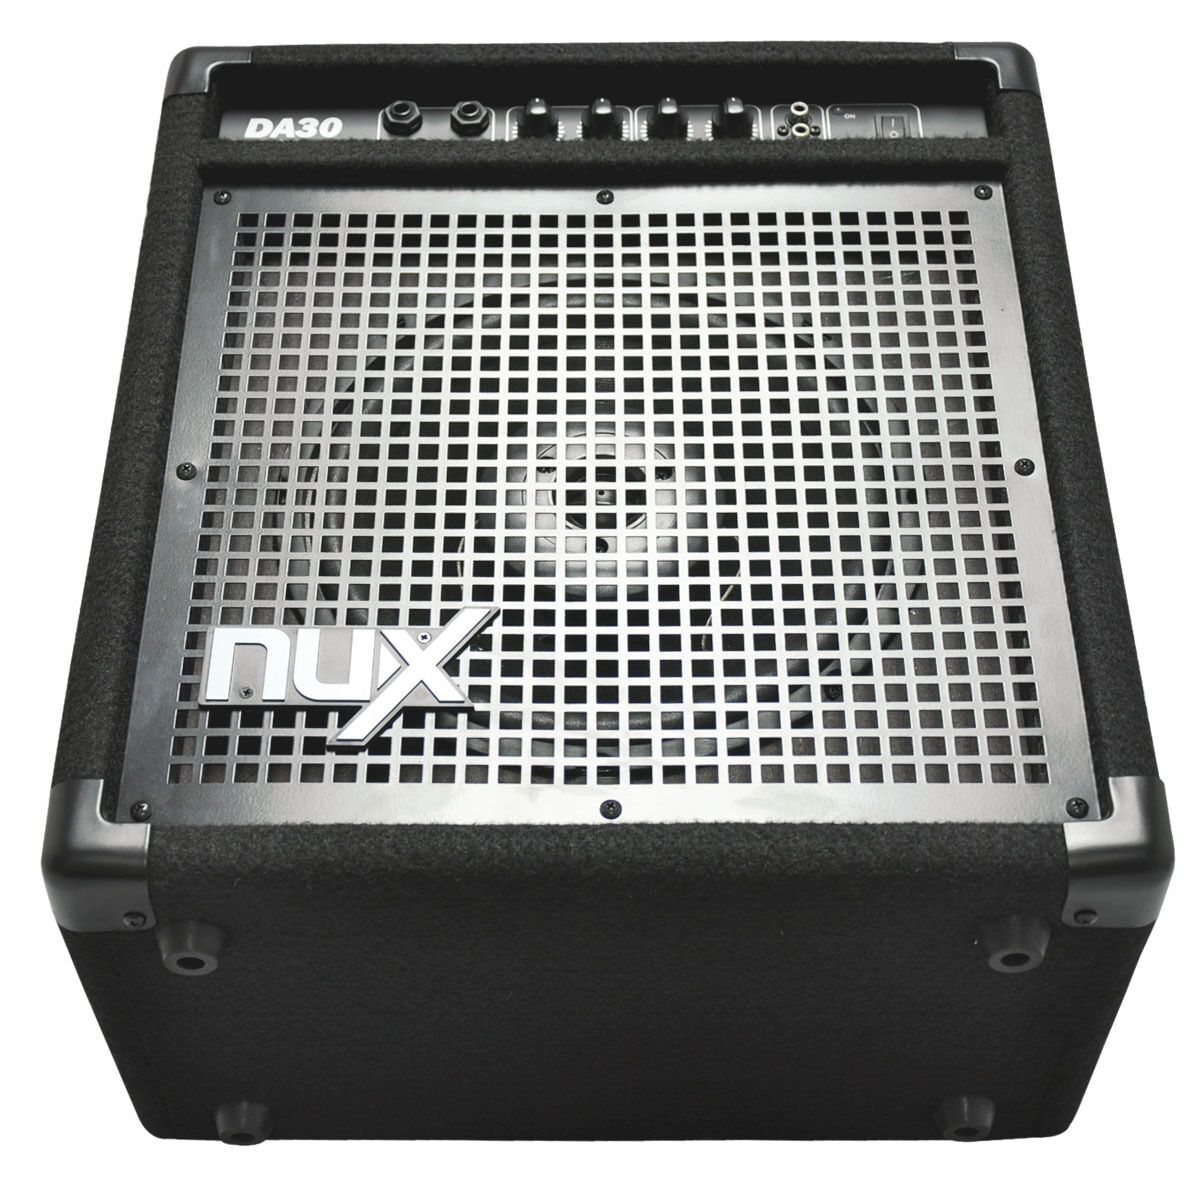 nux da30 30 watt electronic drum monitor amplifier. Black Bedroom Furniture Sets. Home Design Ideas